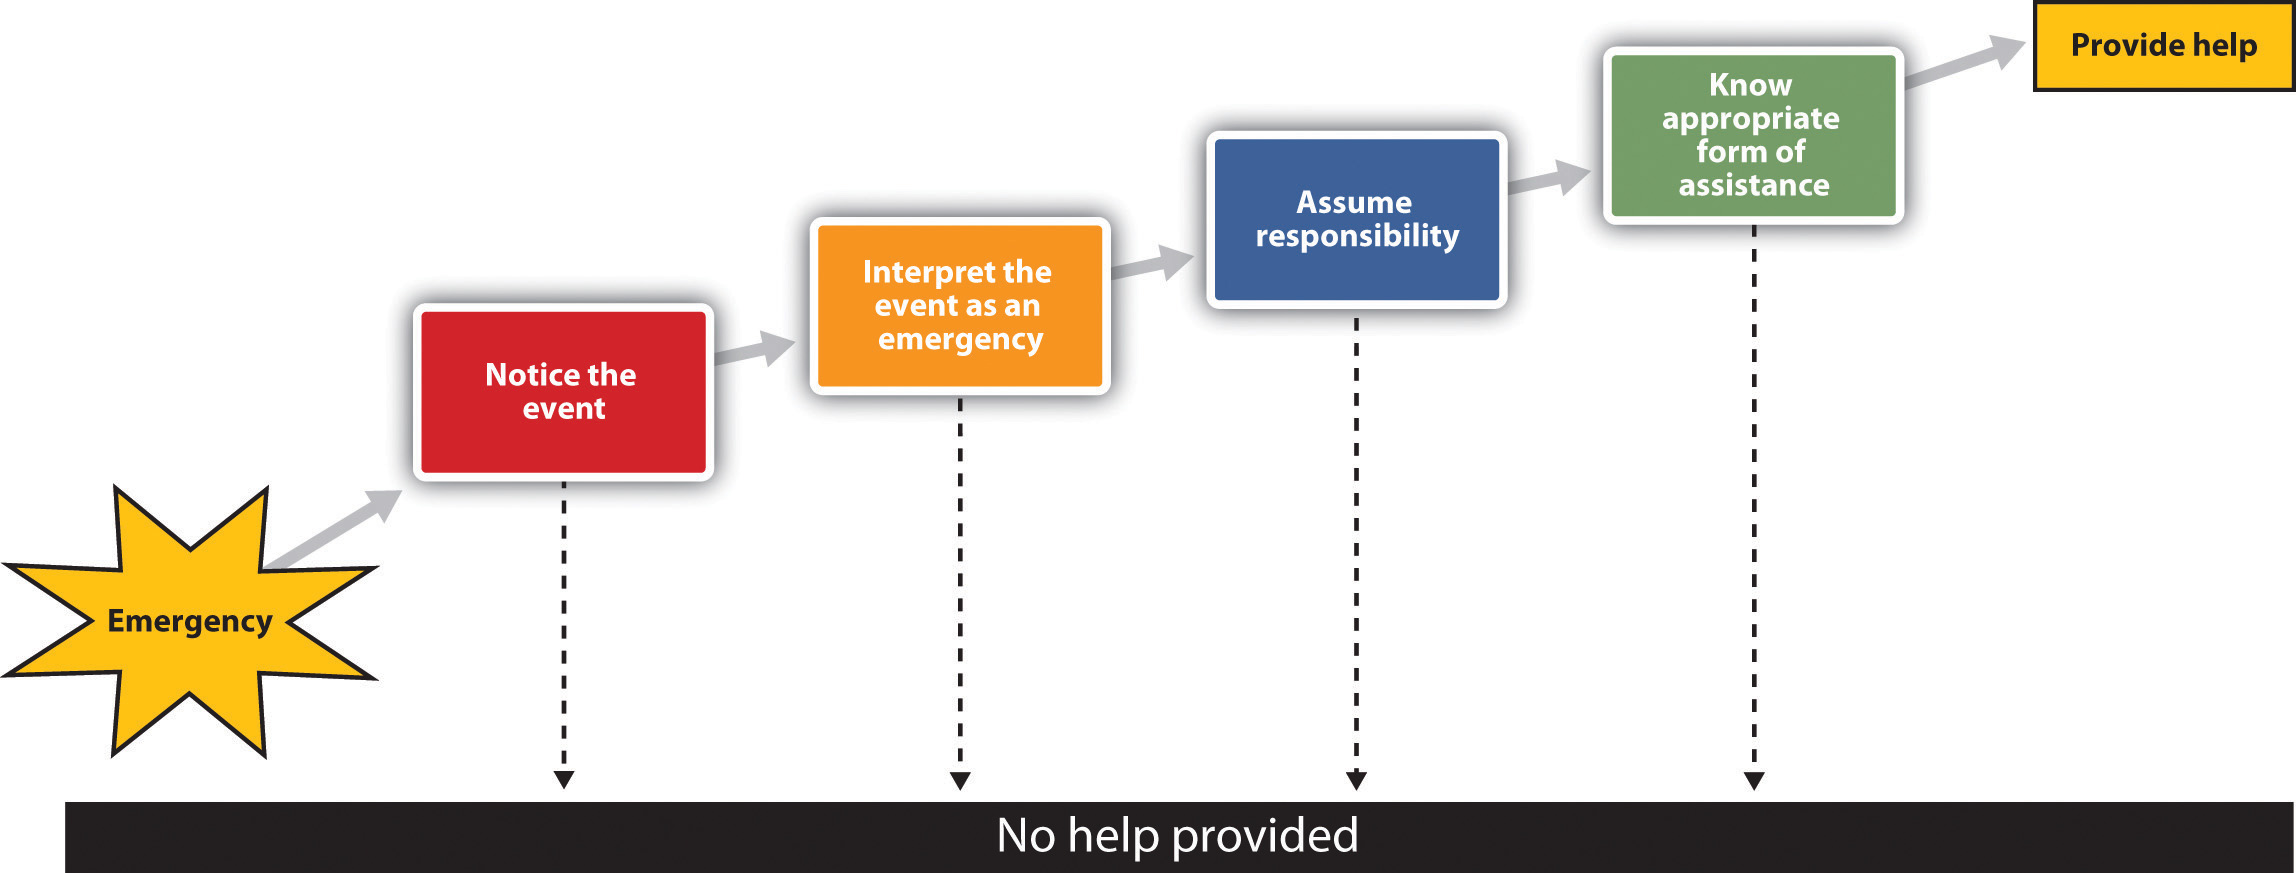 This chart illustrates the steps occuring between an emergency and providing help.